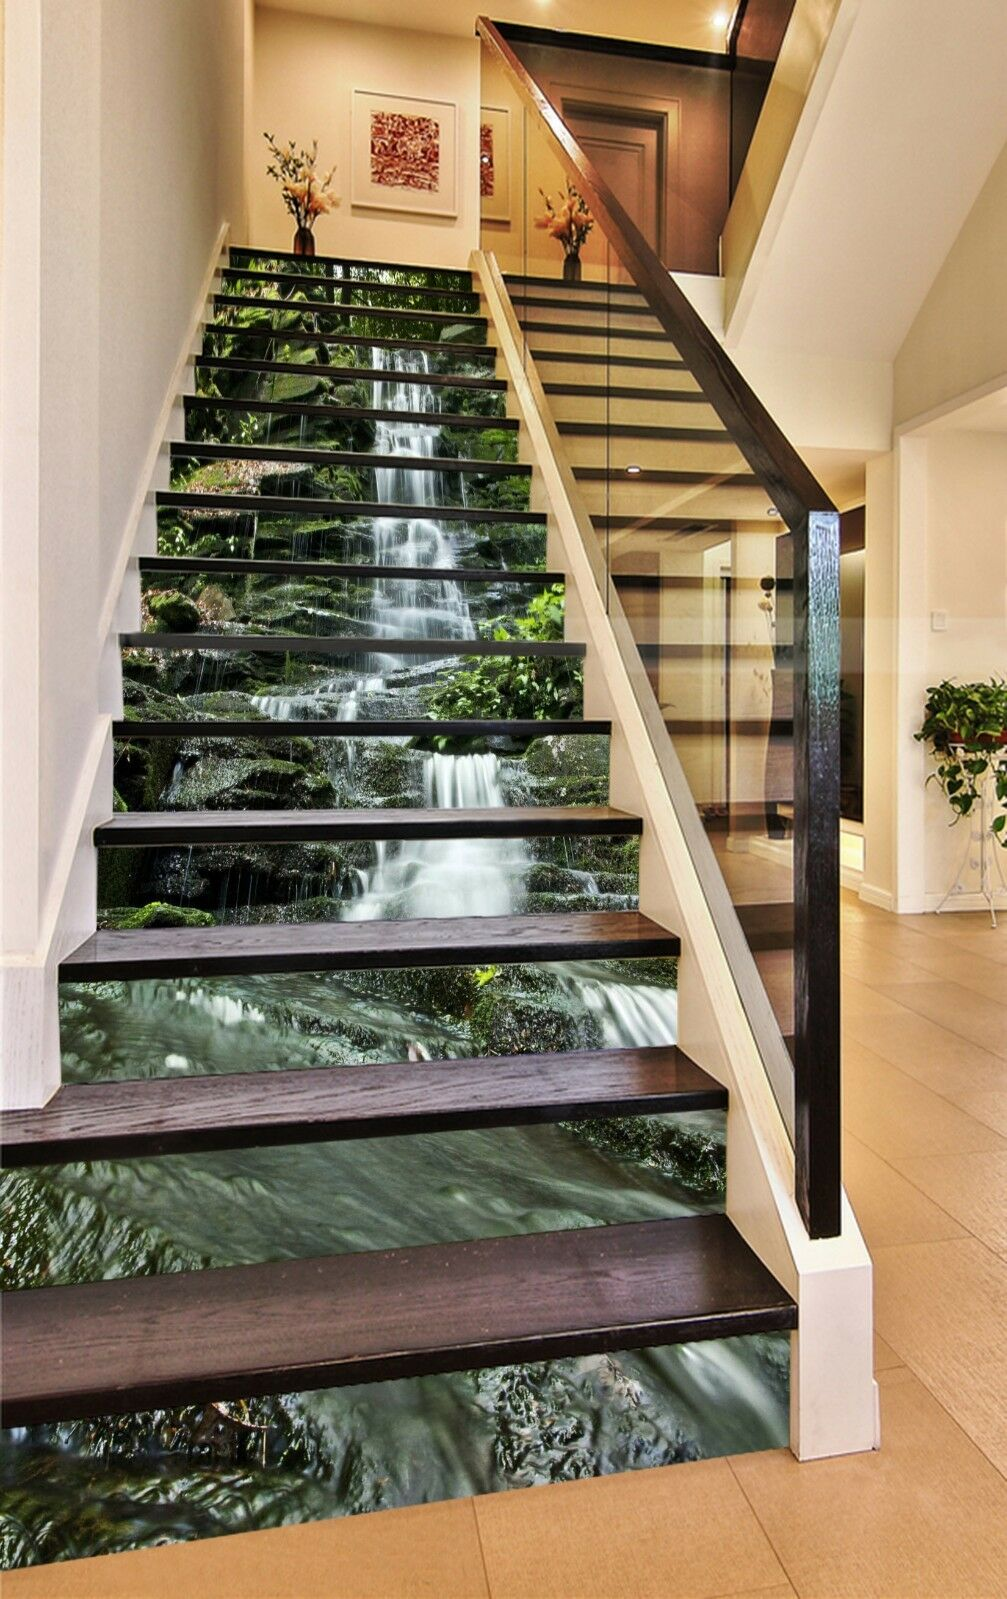 3D Flowing stone 7 Stair Risers Decoration Photo Mural Vinyl Decal Wallpaper UK